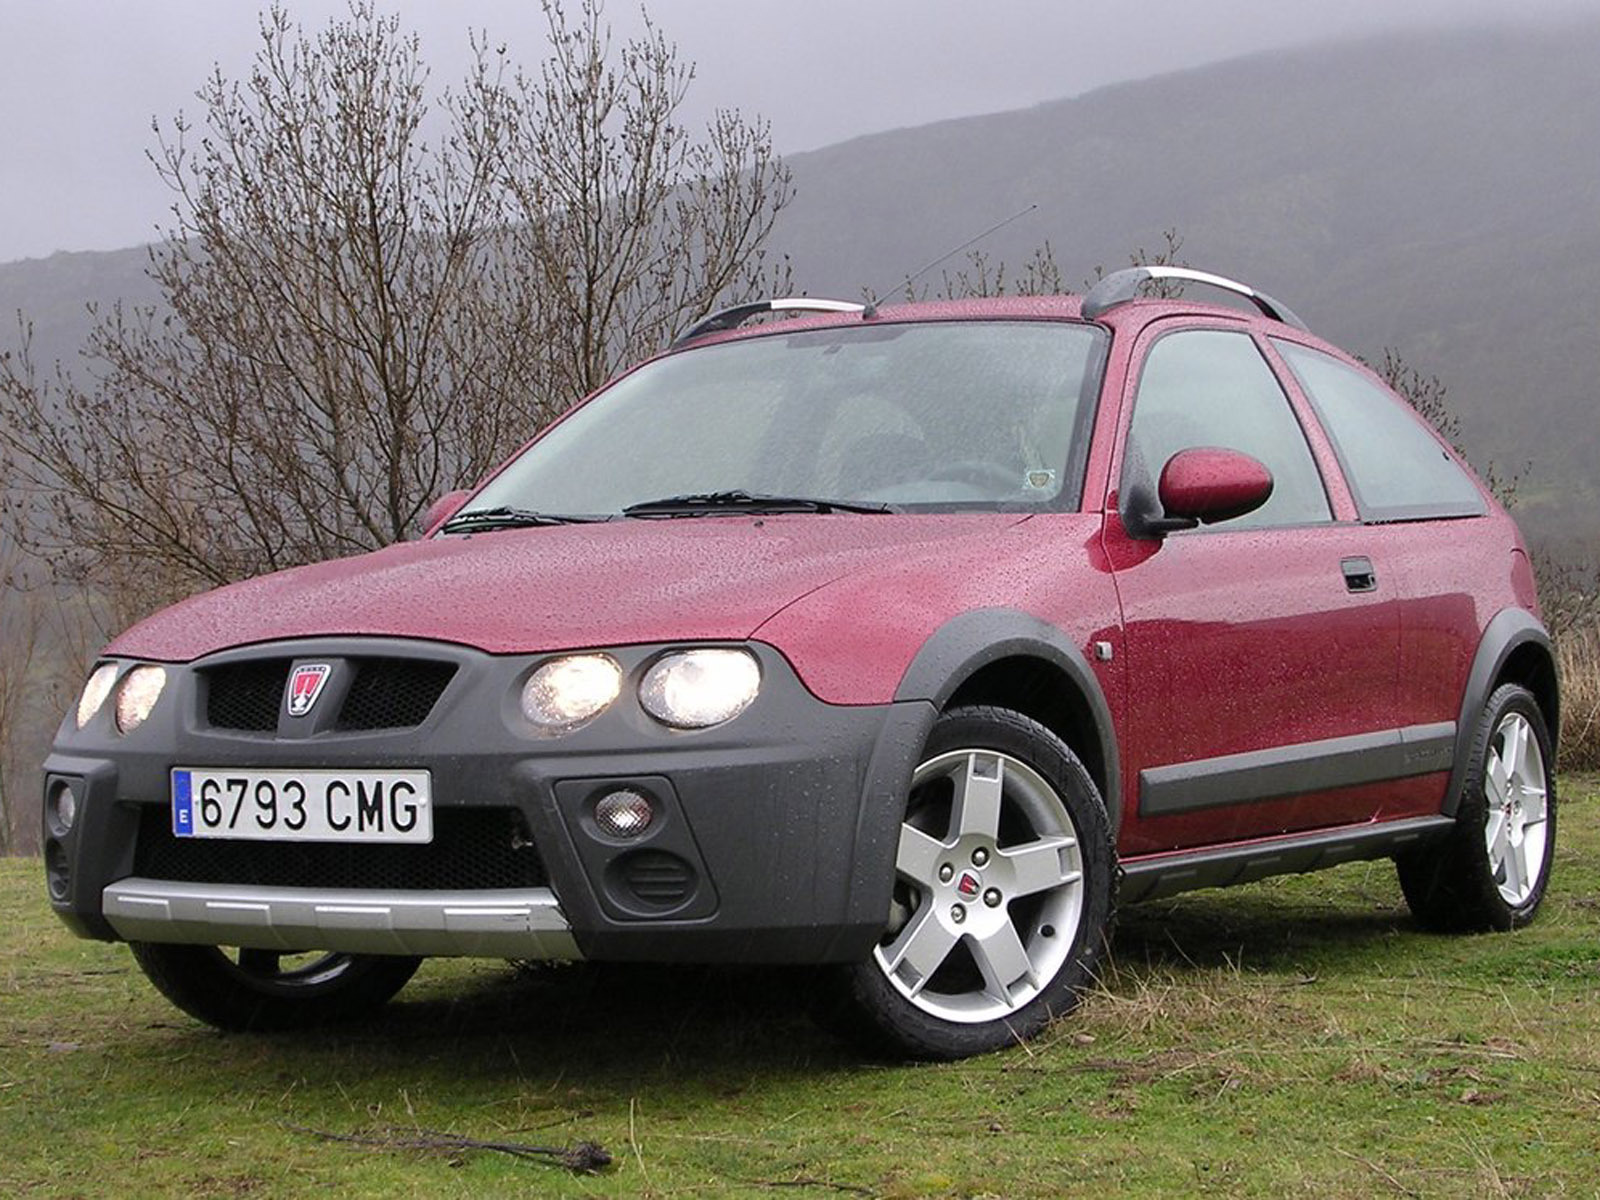 2004 Rover Streetwise #14